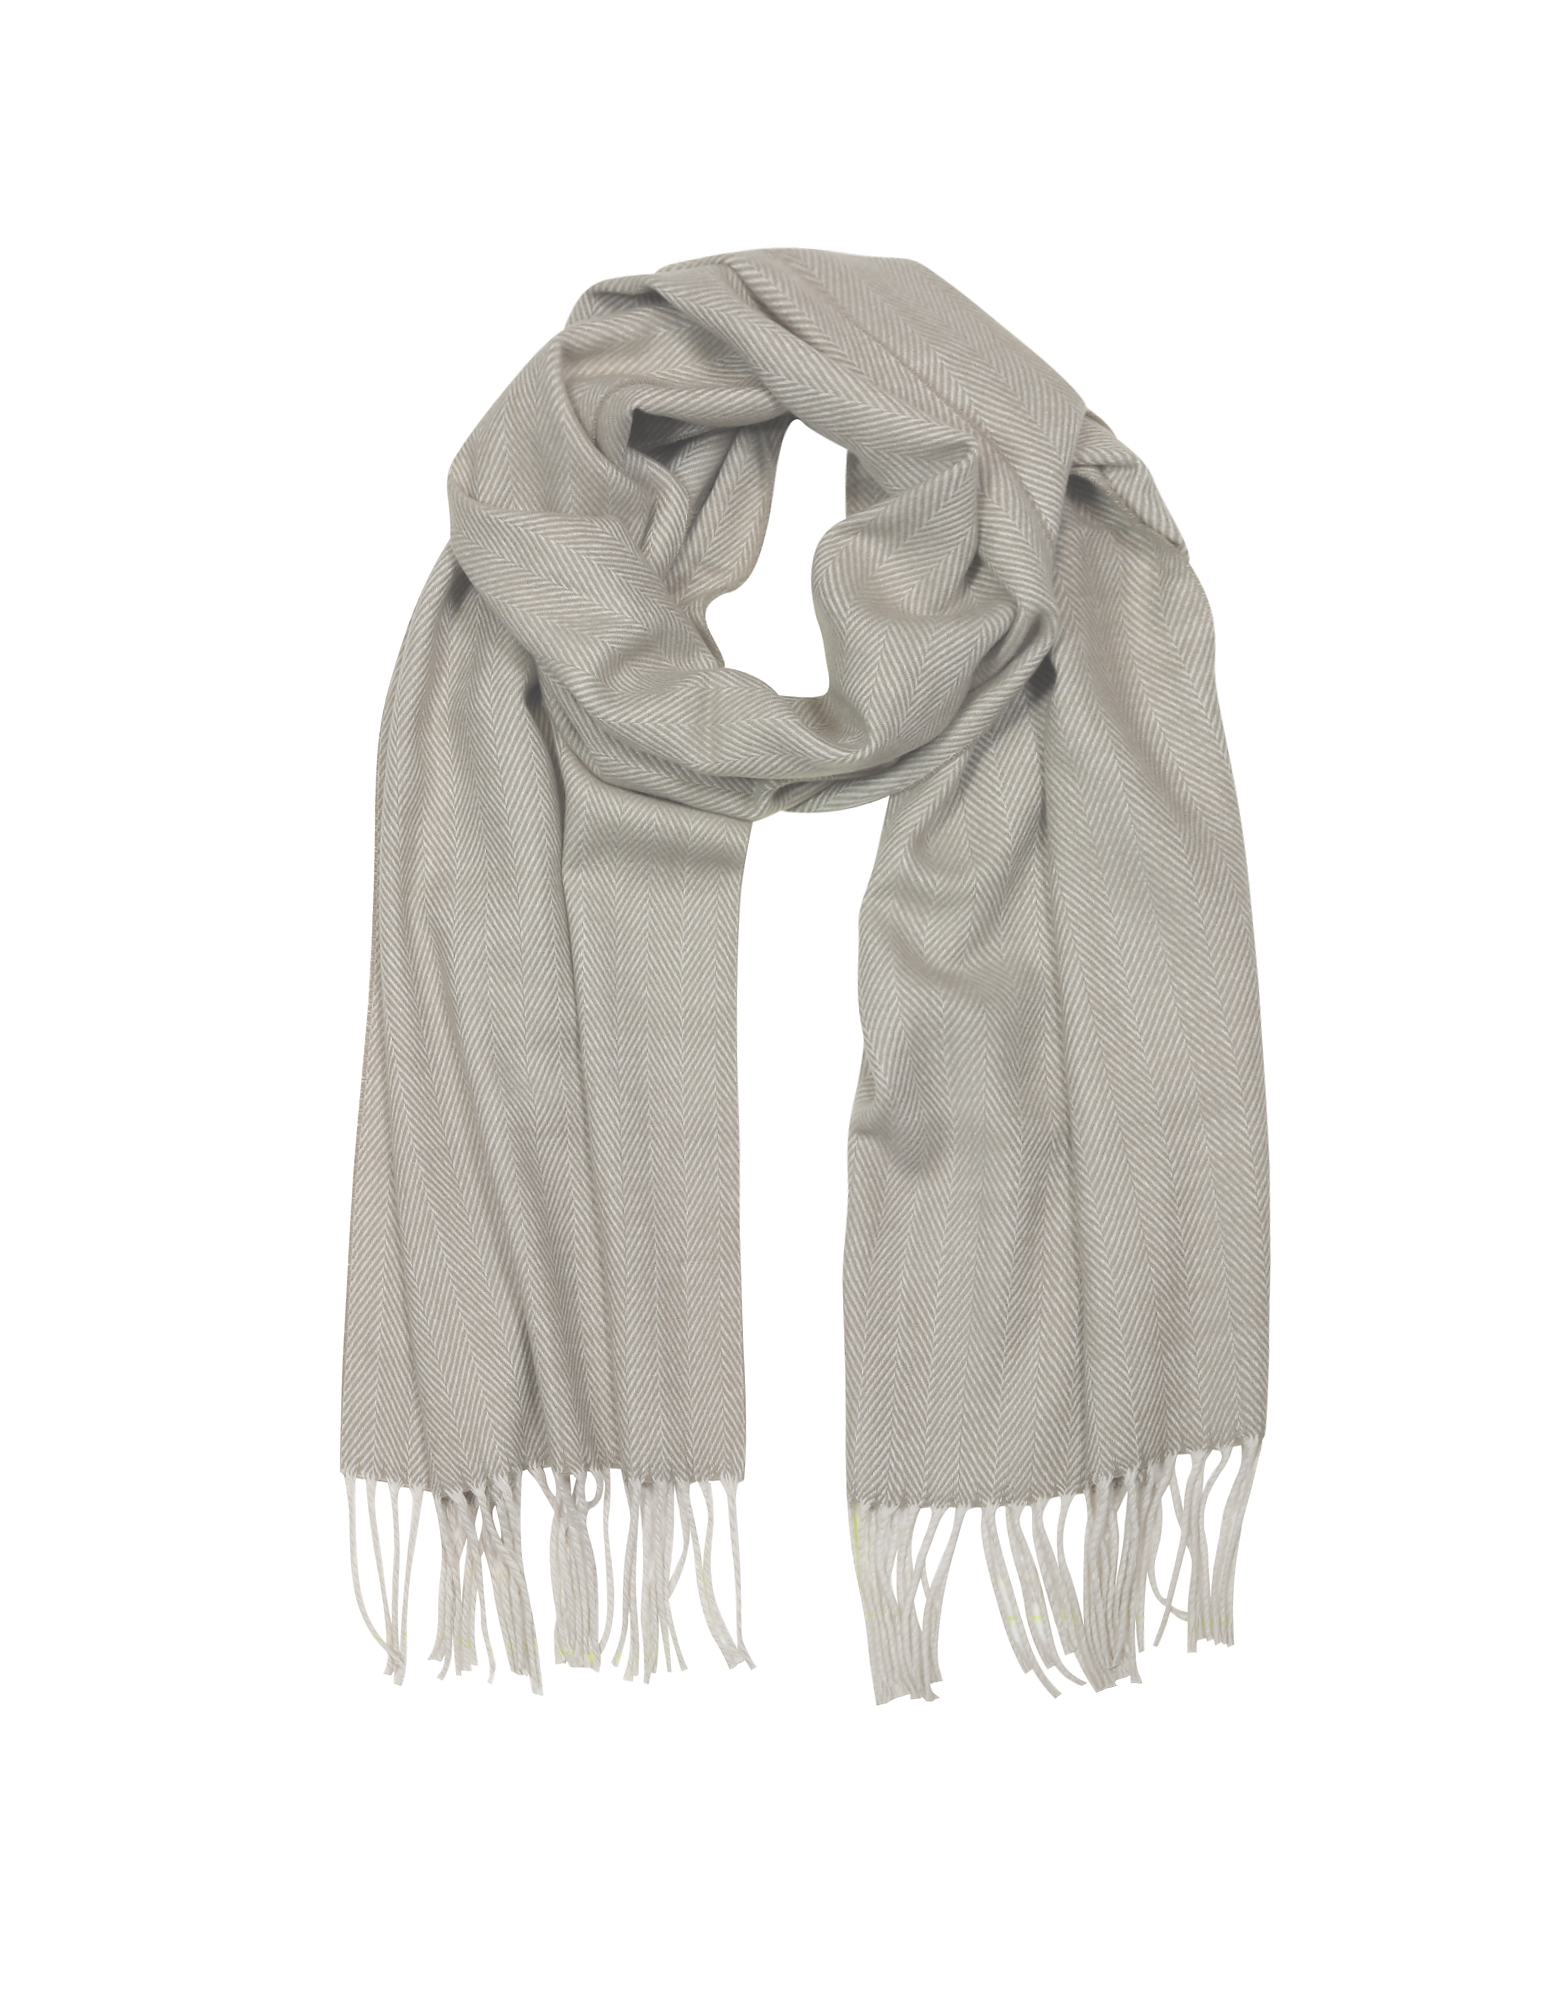 Mila Schon Long Scarves, Herringbone Cashmere, wool and Silk Fringed Long Scarf